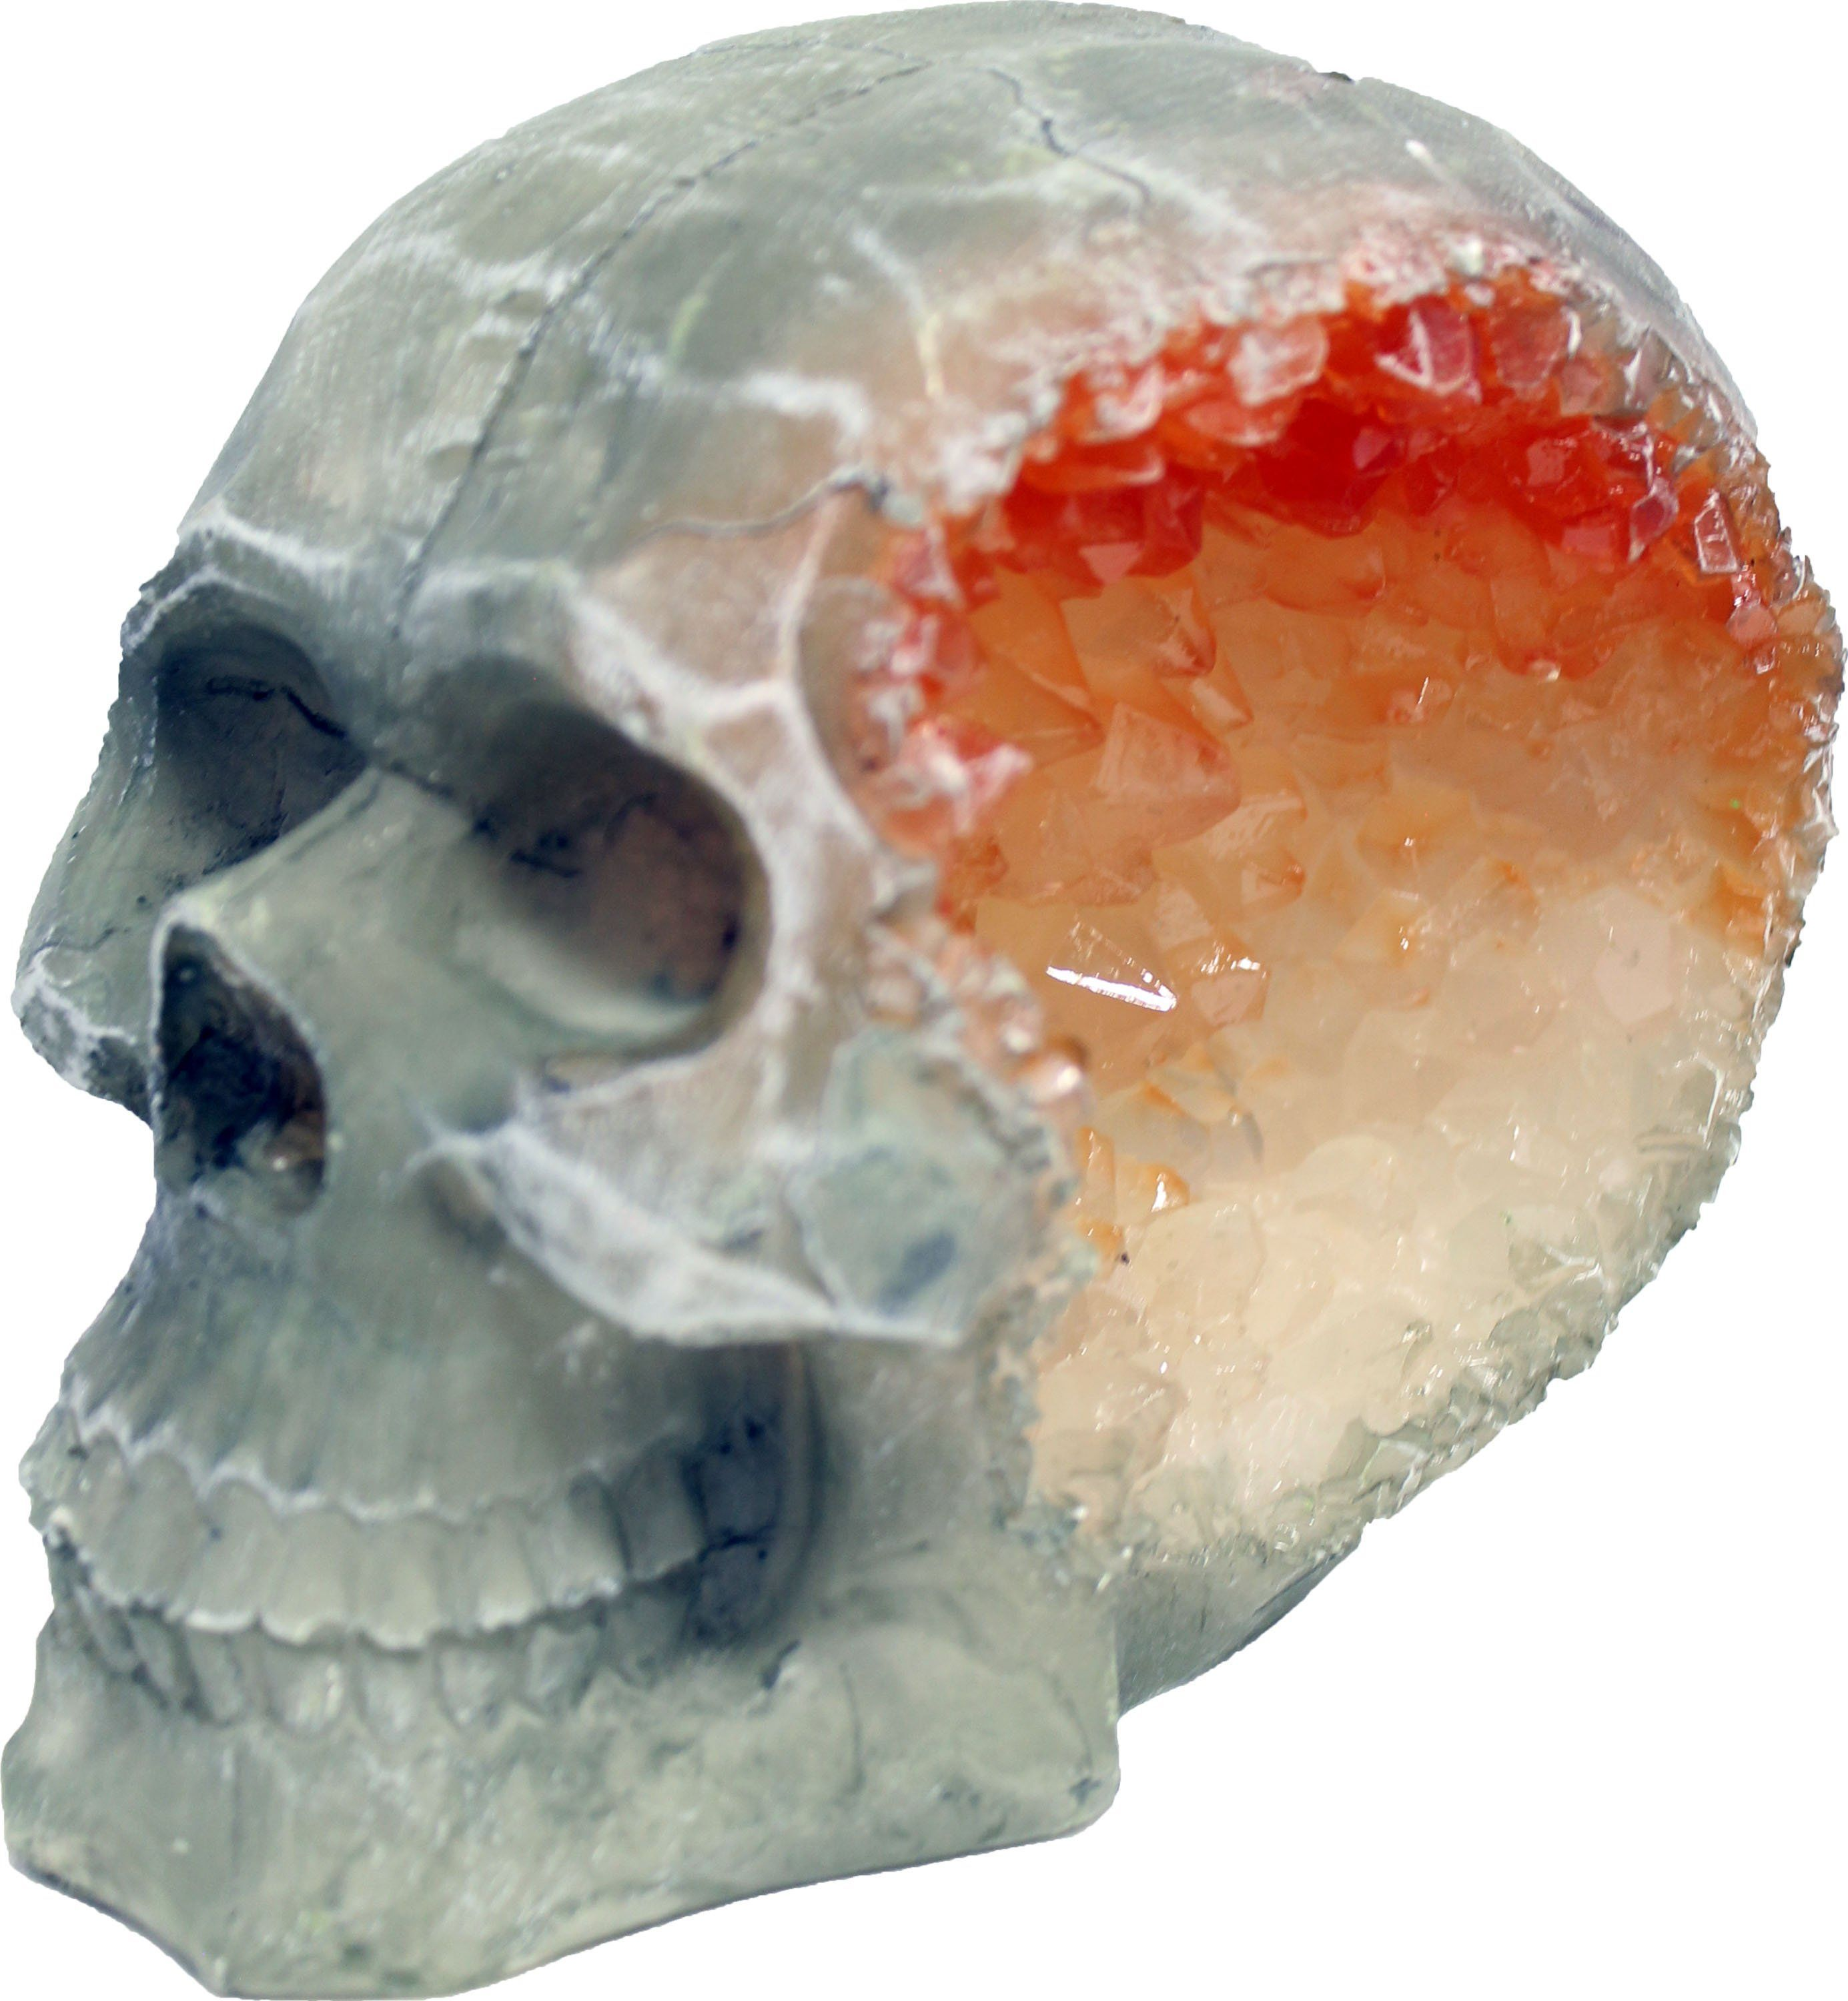 ff564e362736 Blue Ribbon Pet Products-Exotic Environments Skull Geode Stone Small ...